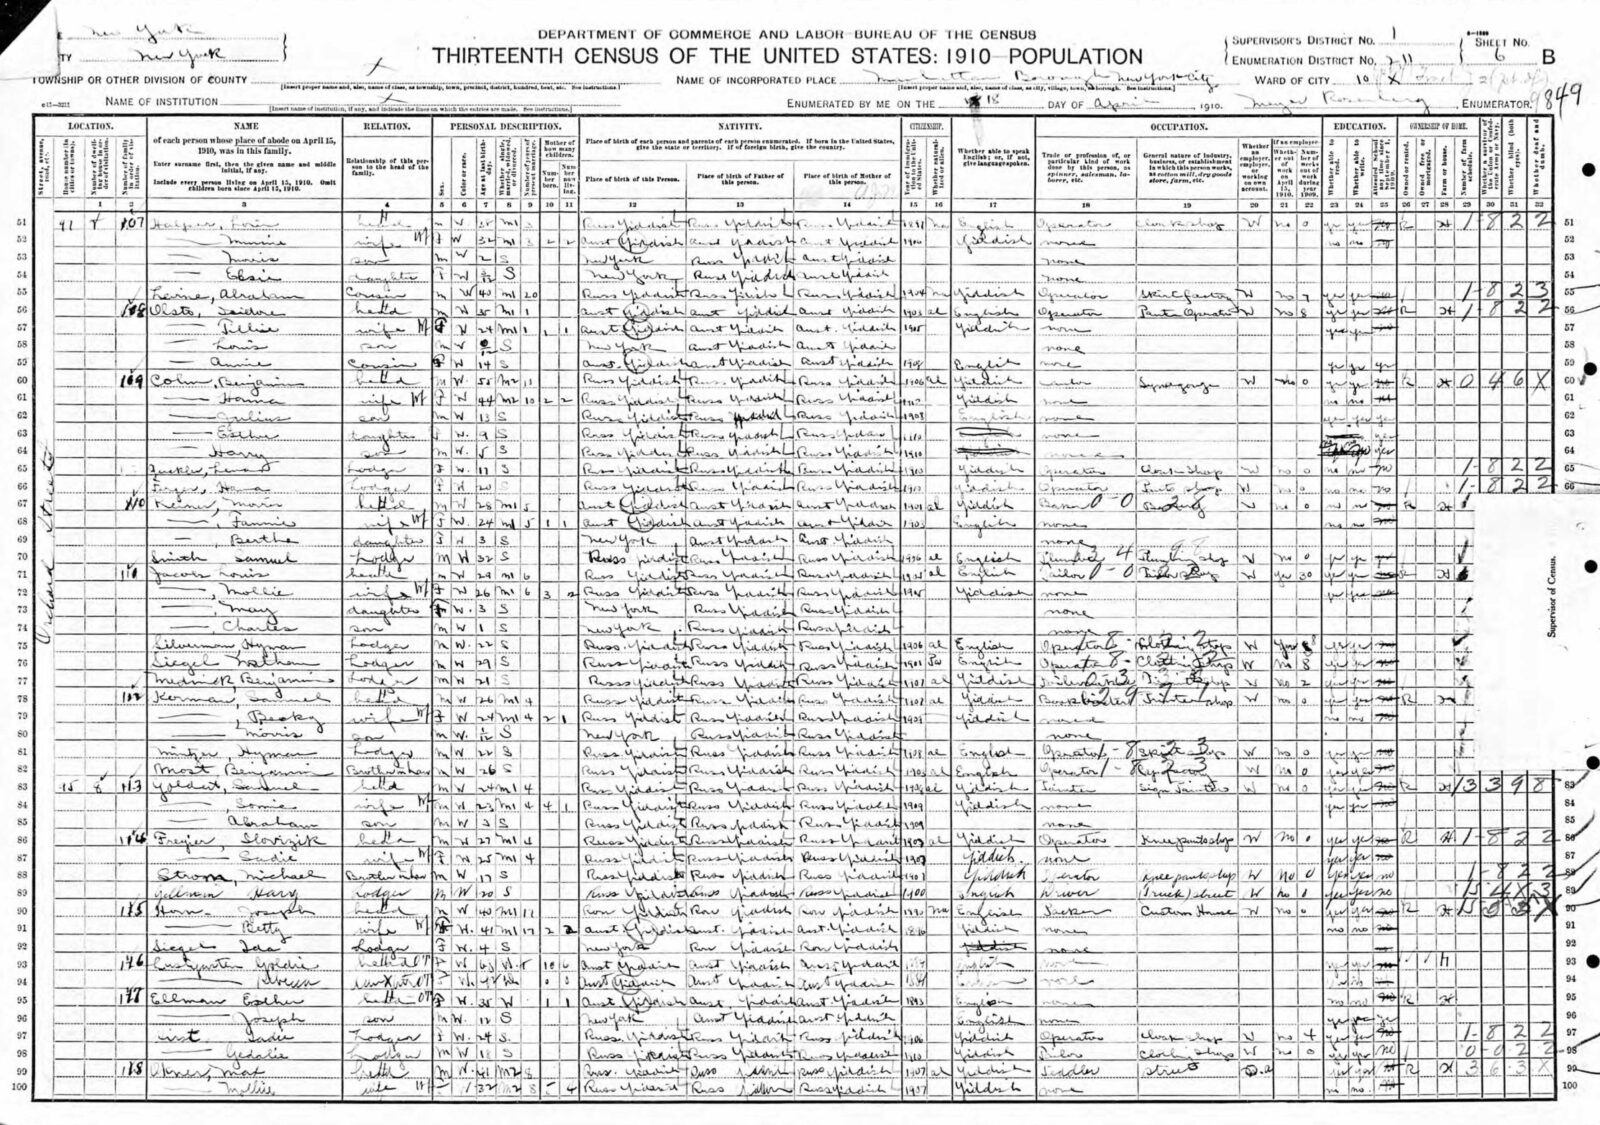 1910 US census with long, handwritten lists of names and demographics that include some of the Rogarshevsky family